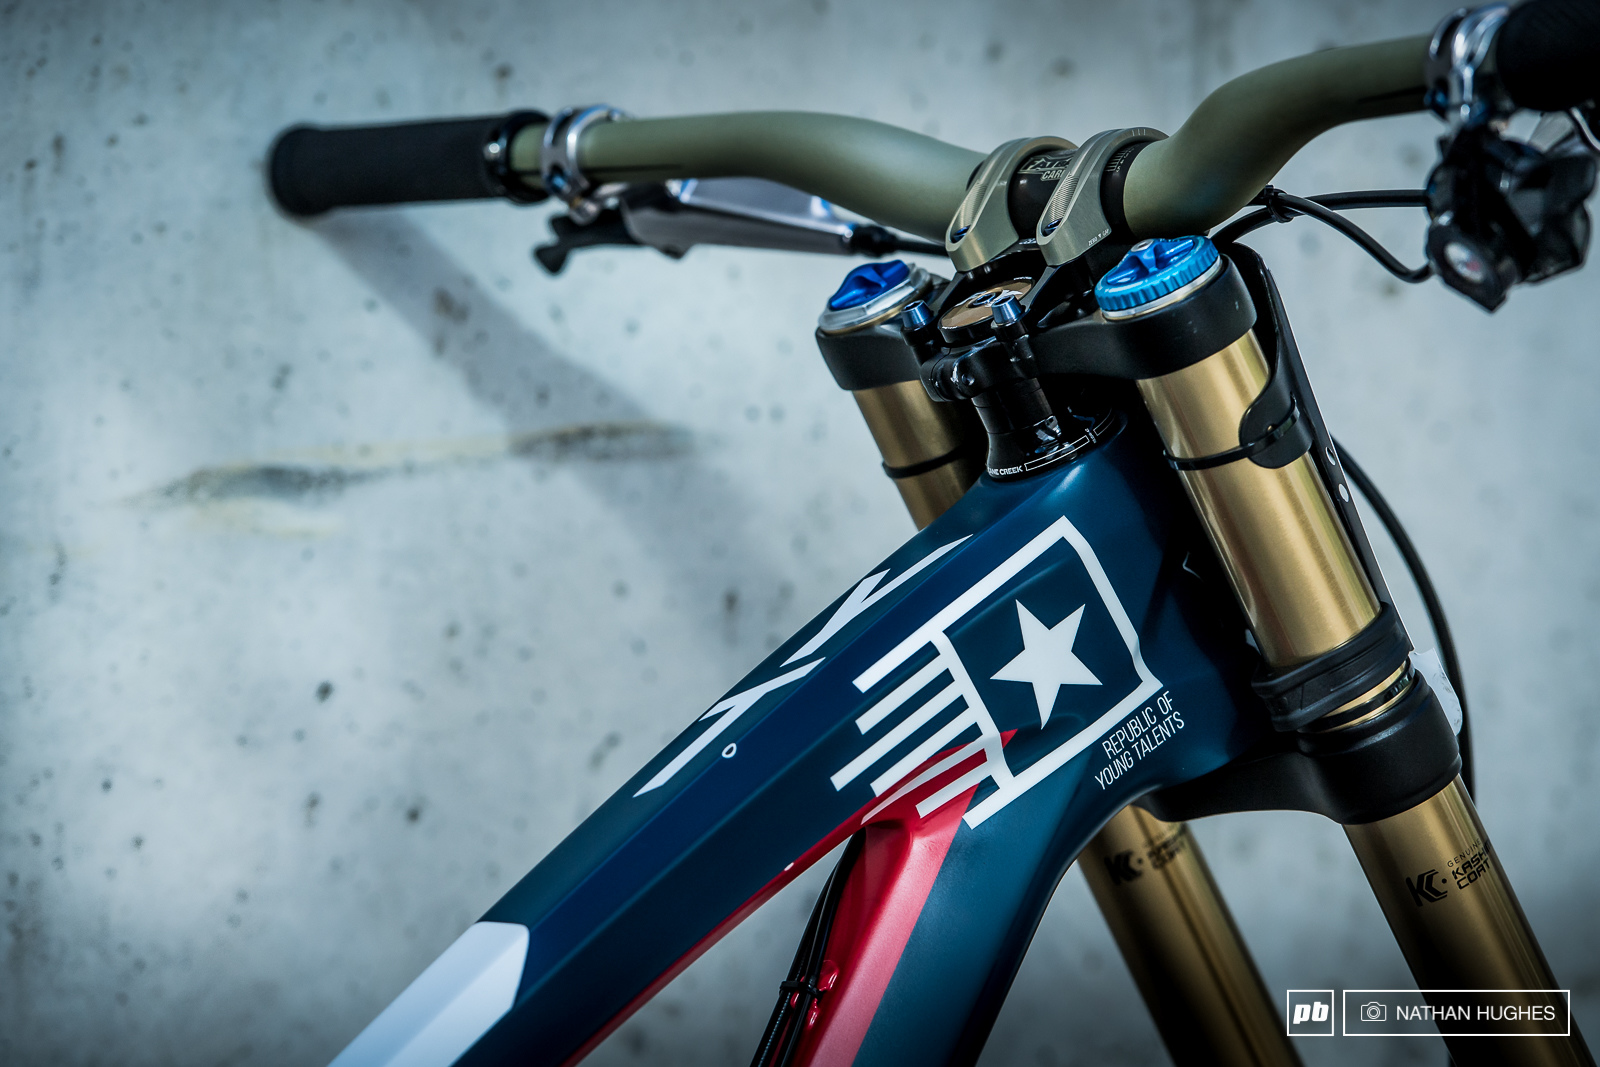 Bikes of the Best - Val di Sole DH World Ch&s 2016 & Bikes of the Best - Val di Sole DH World Champs 2016 - Pinkbike